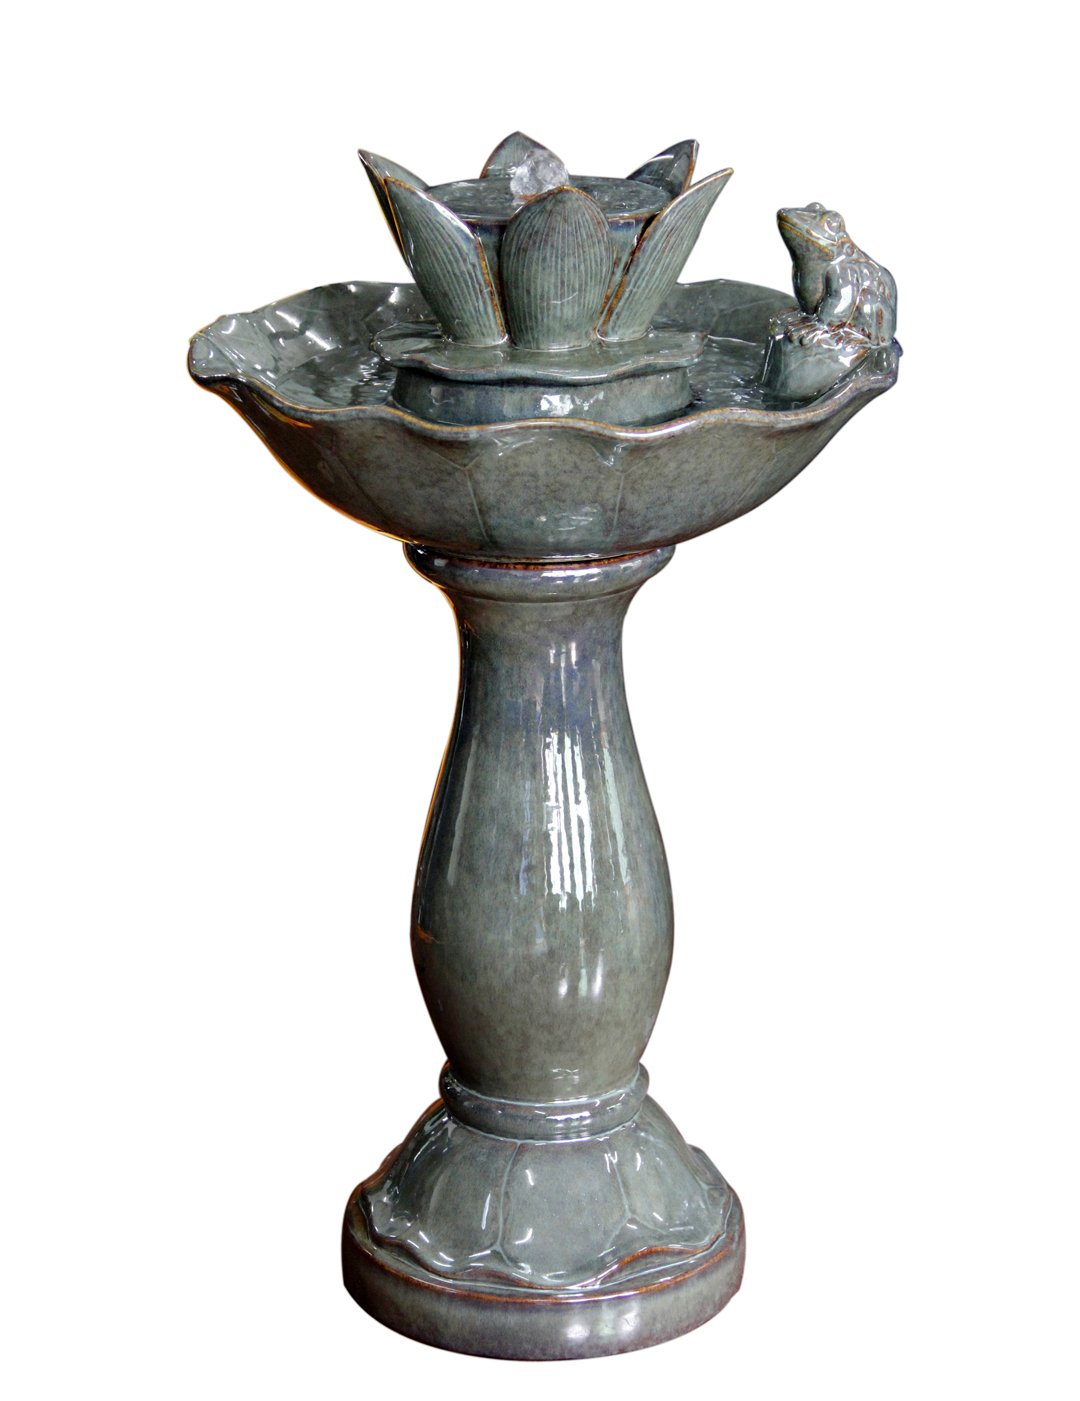 KelKay F1214107 Ceramic Frog and Lily Pad Bird Bath Fountain